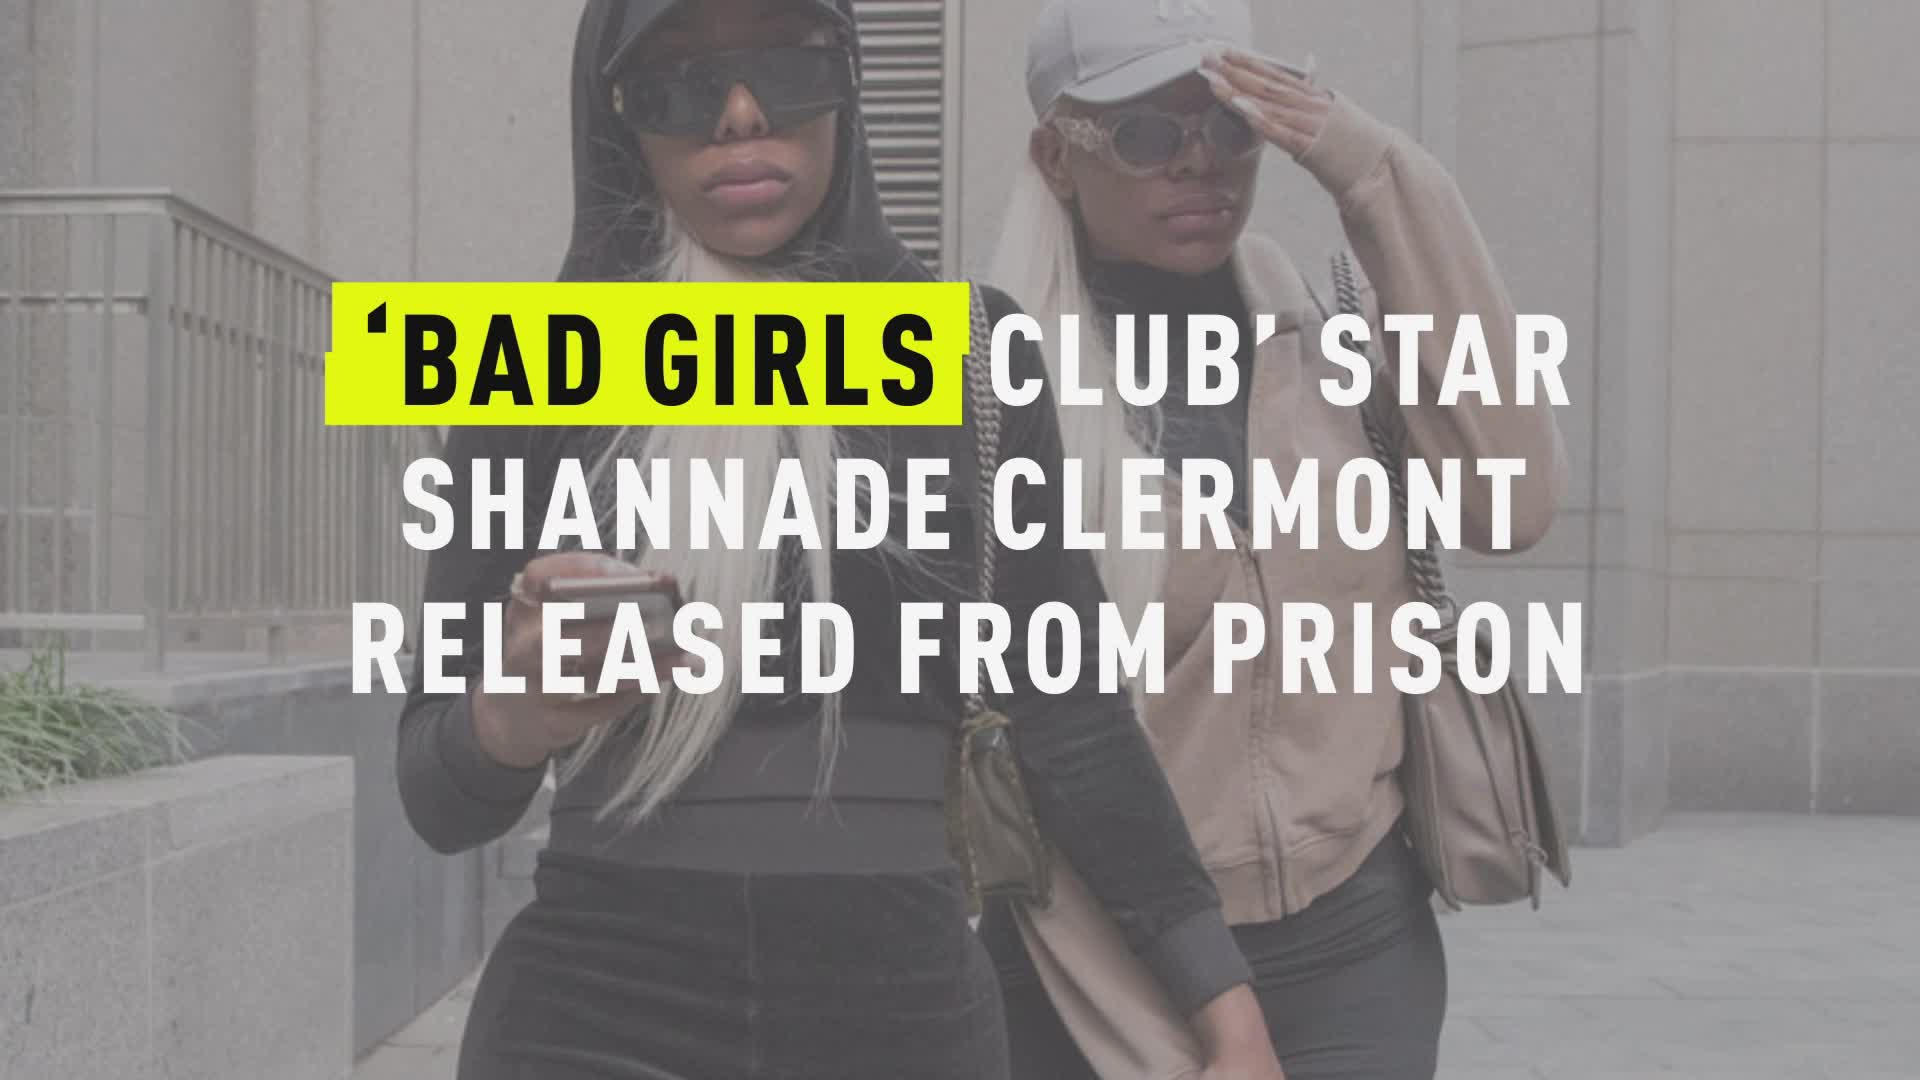 'Bad Girls Club' Star Shannade Clermont Released From Prison